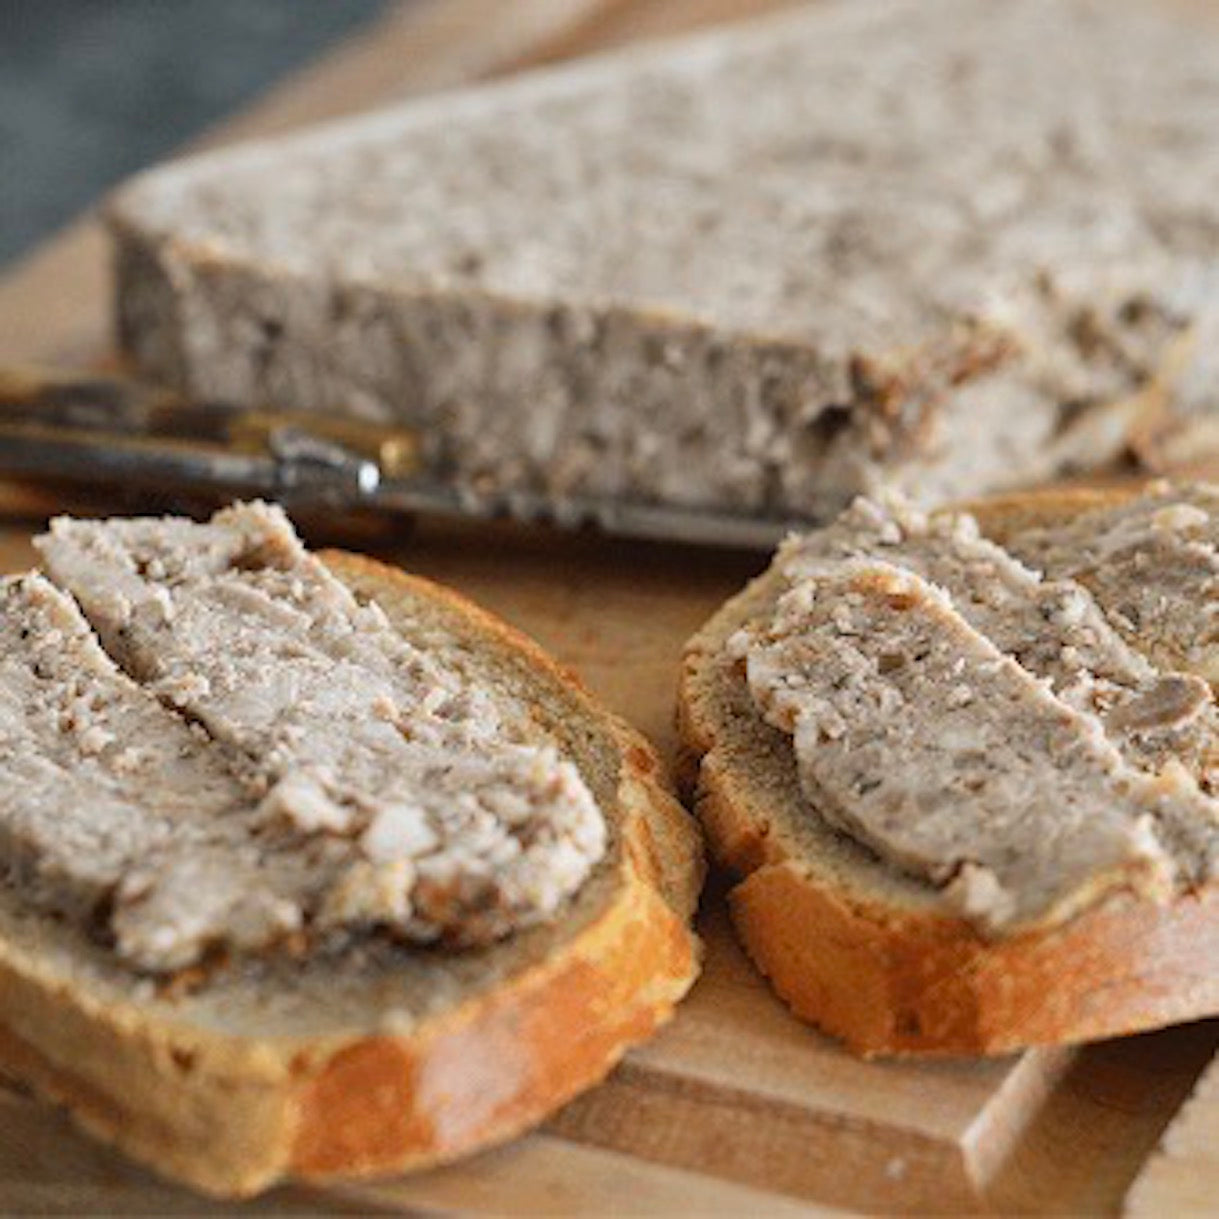 pate-de-campagne-guerande-larnaudie-online-grocery-delivery-singapore-thenewgrocer